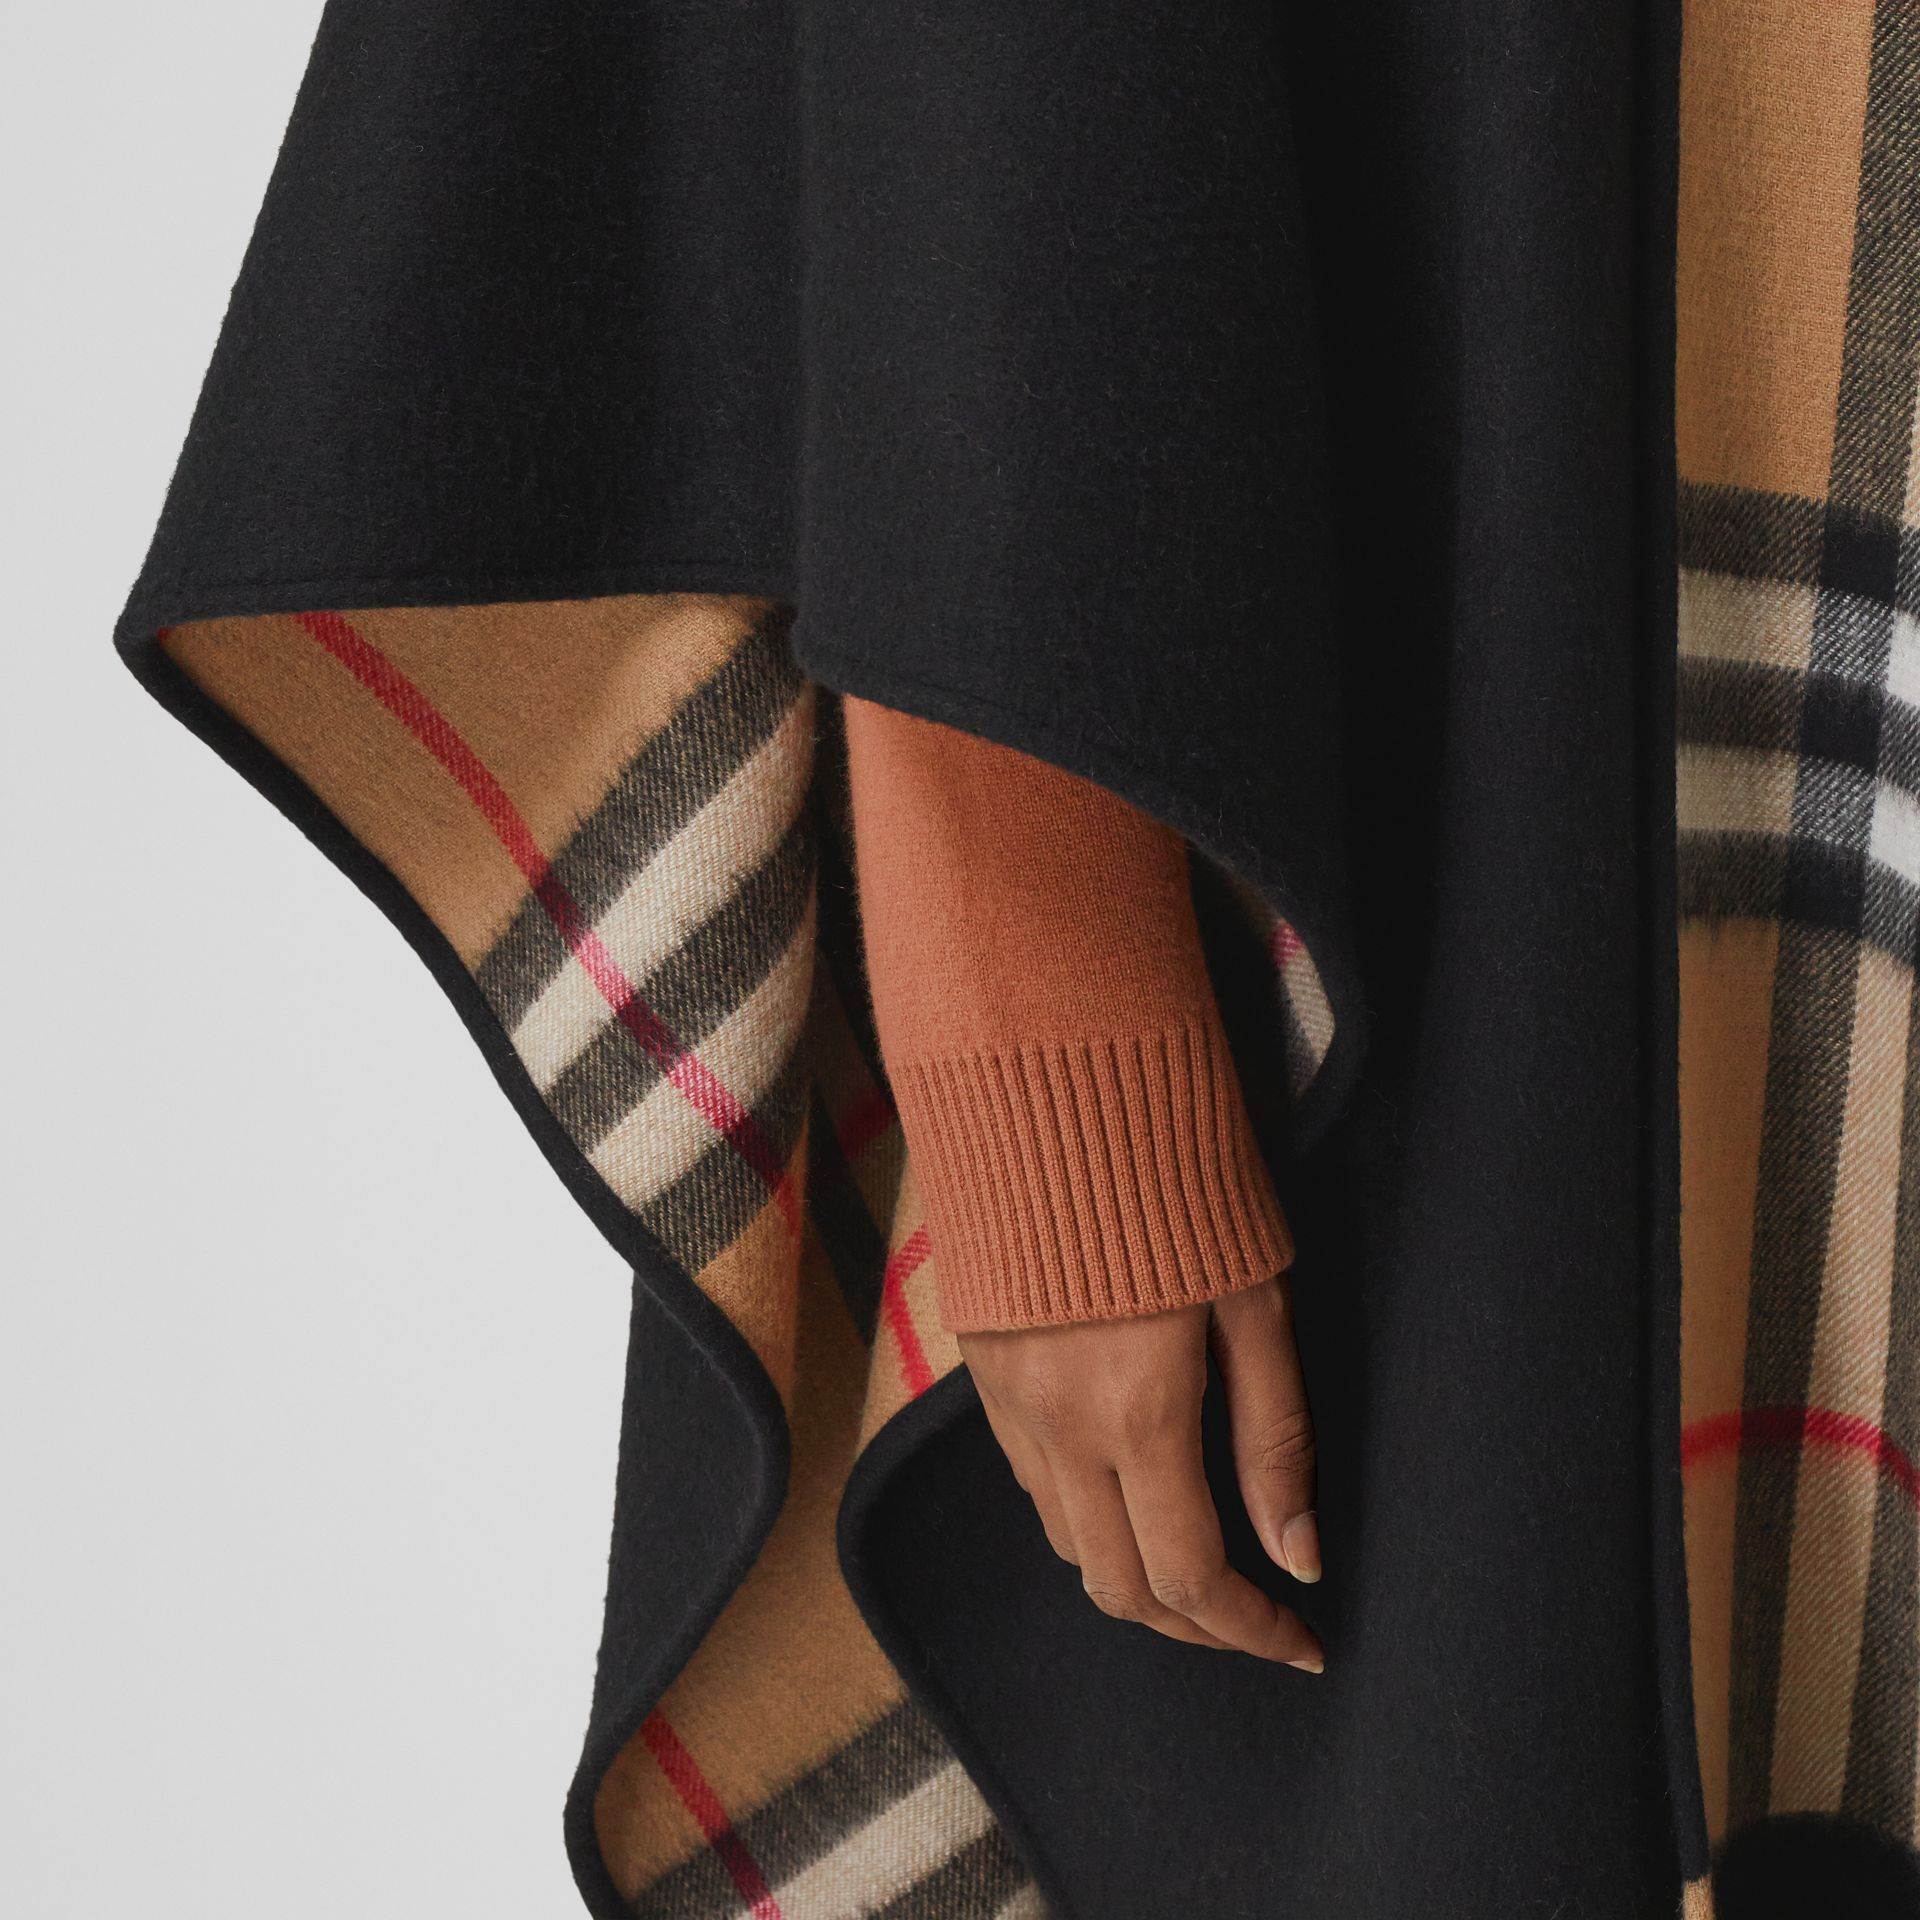 Check-lined Cashmere Merino Wool Cape in Black - Women | Burberry - gallery image 4